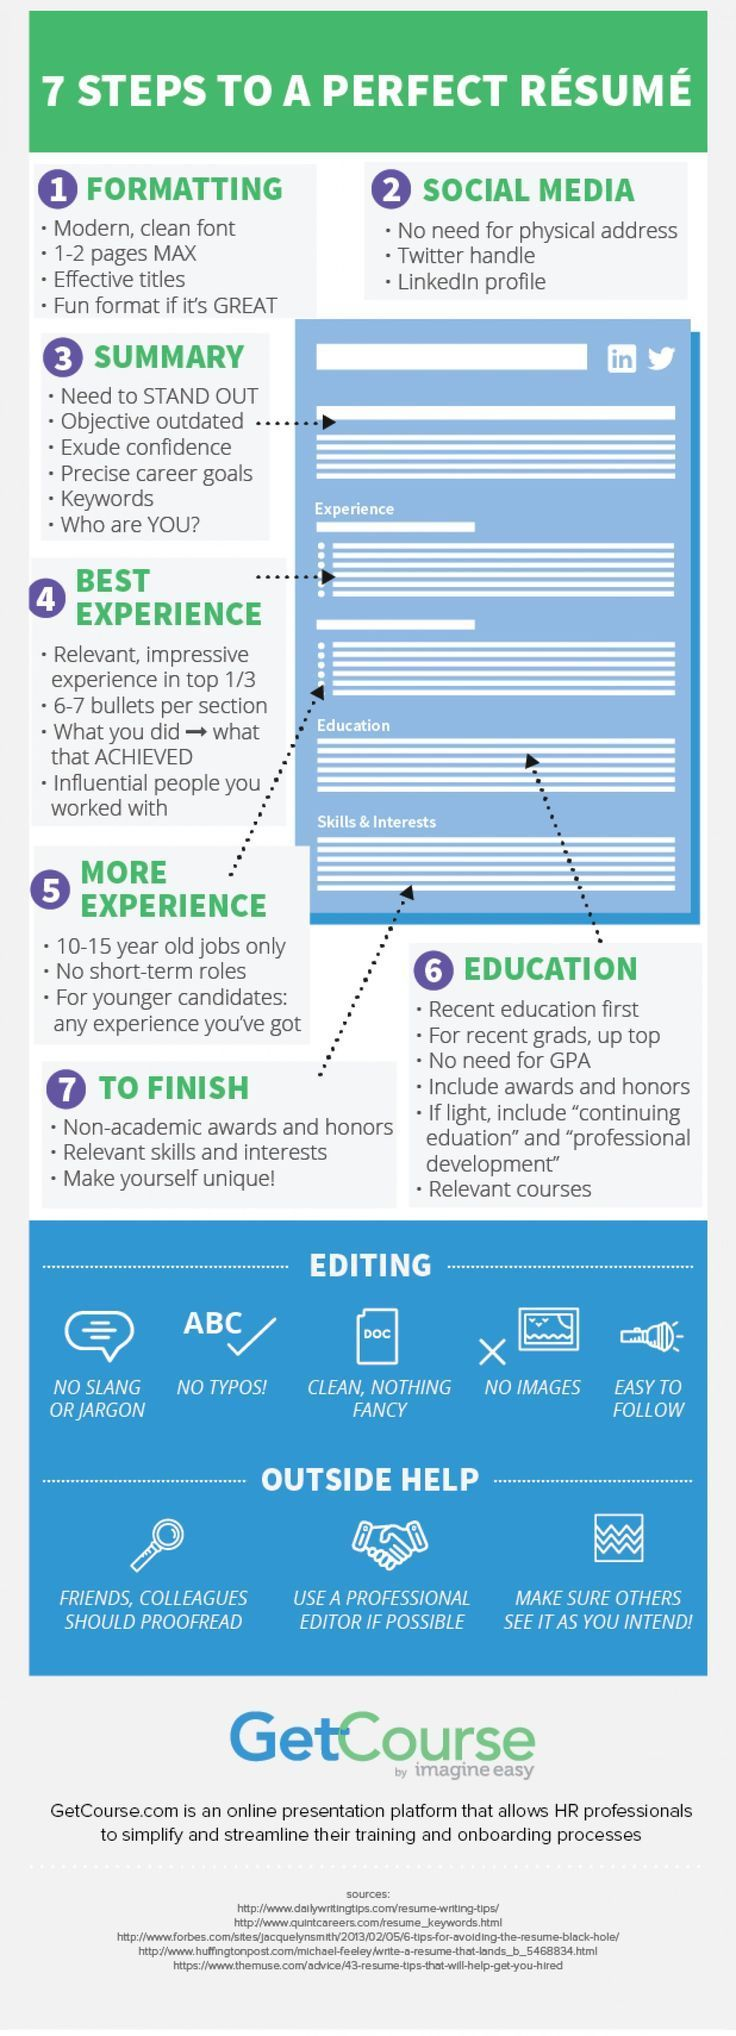 How to FIND A JOB easy and fast. Read more on Tipsographic